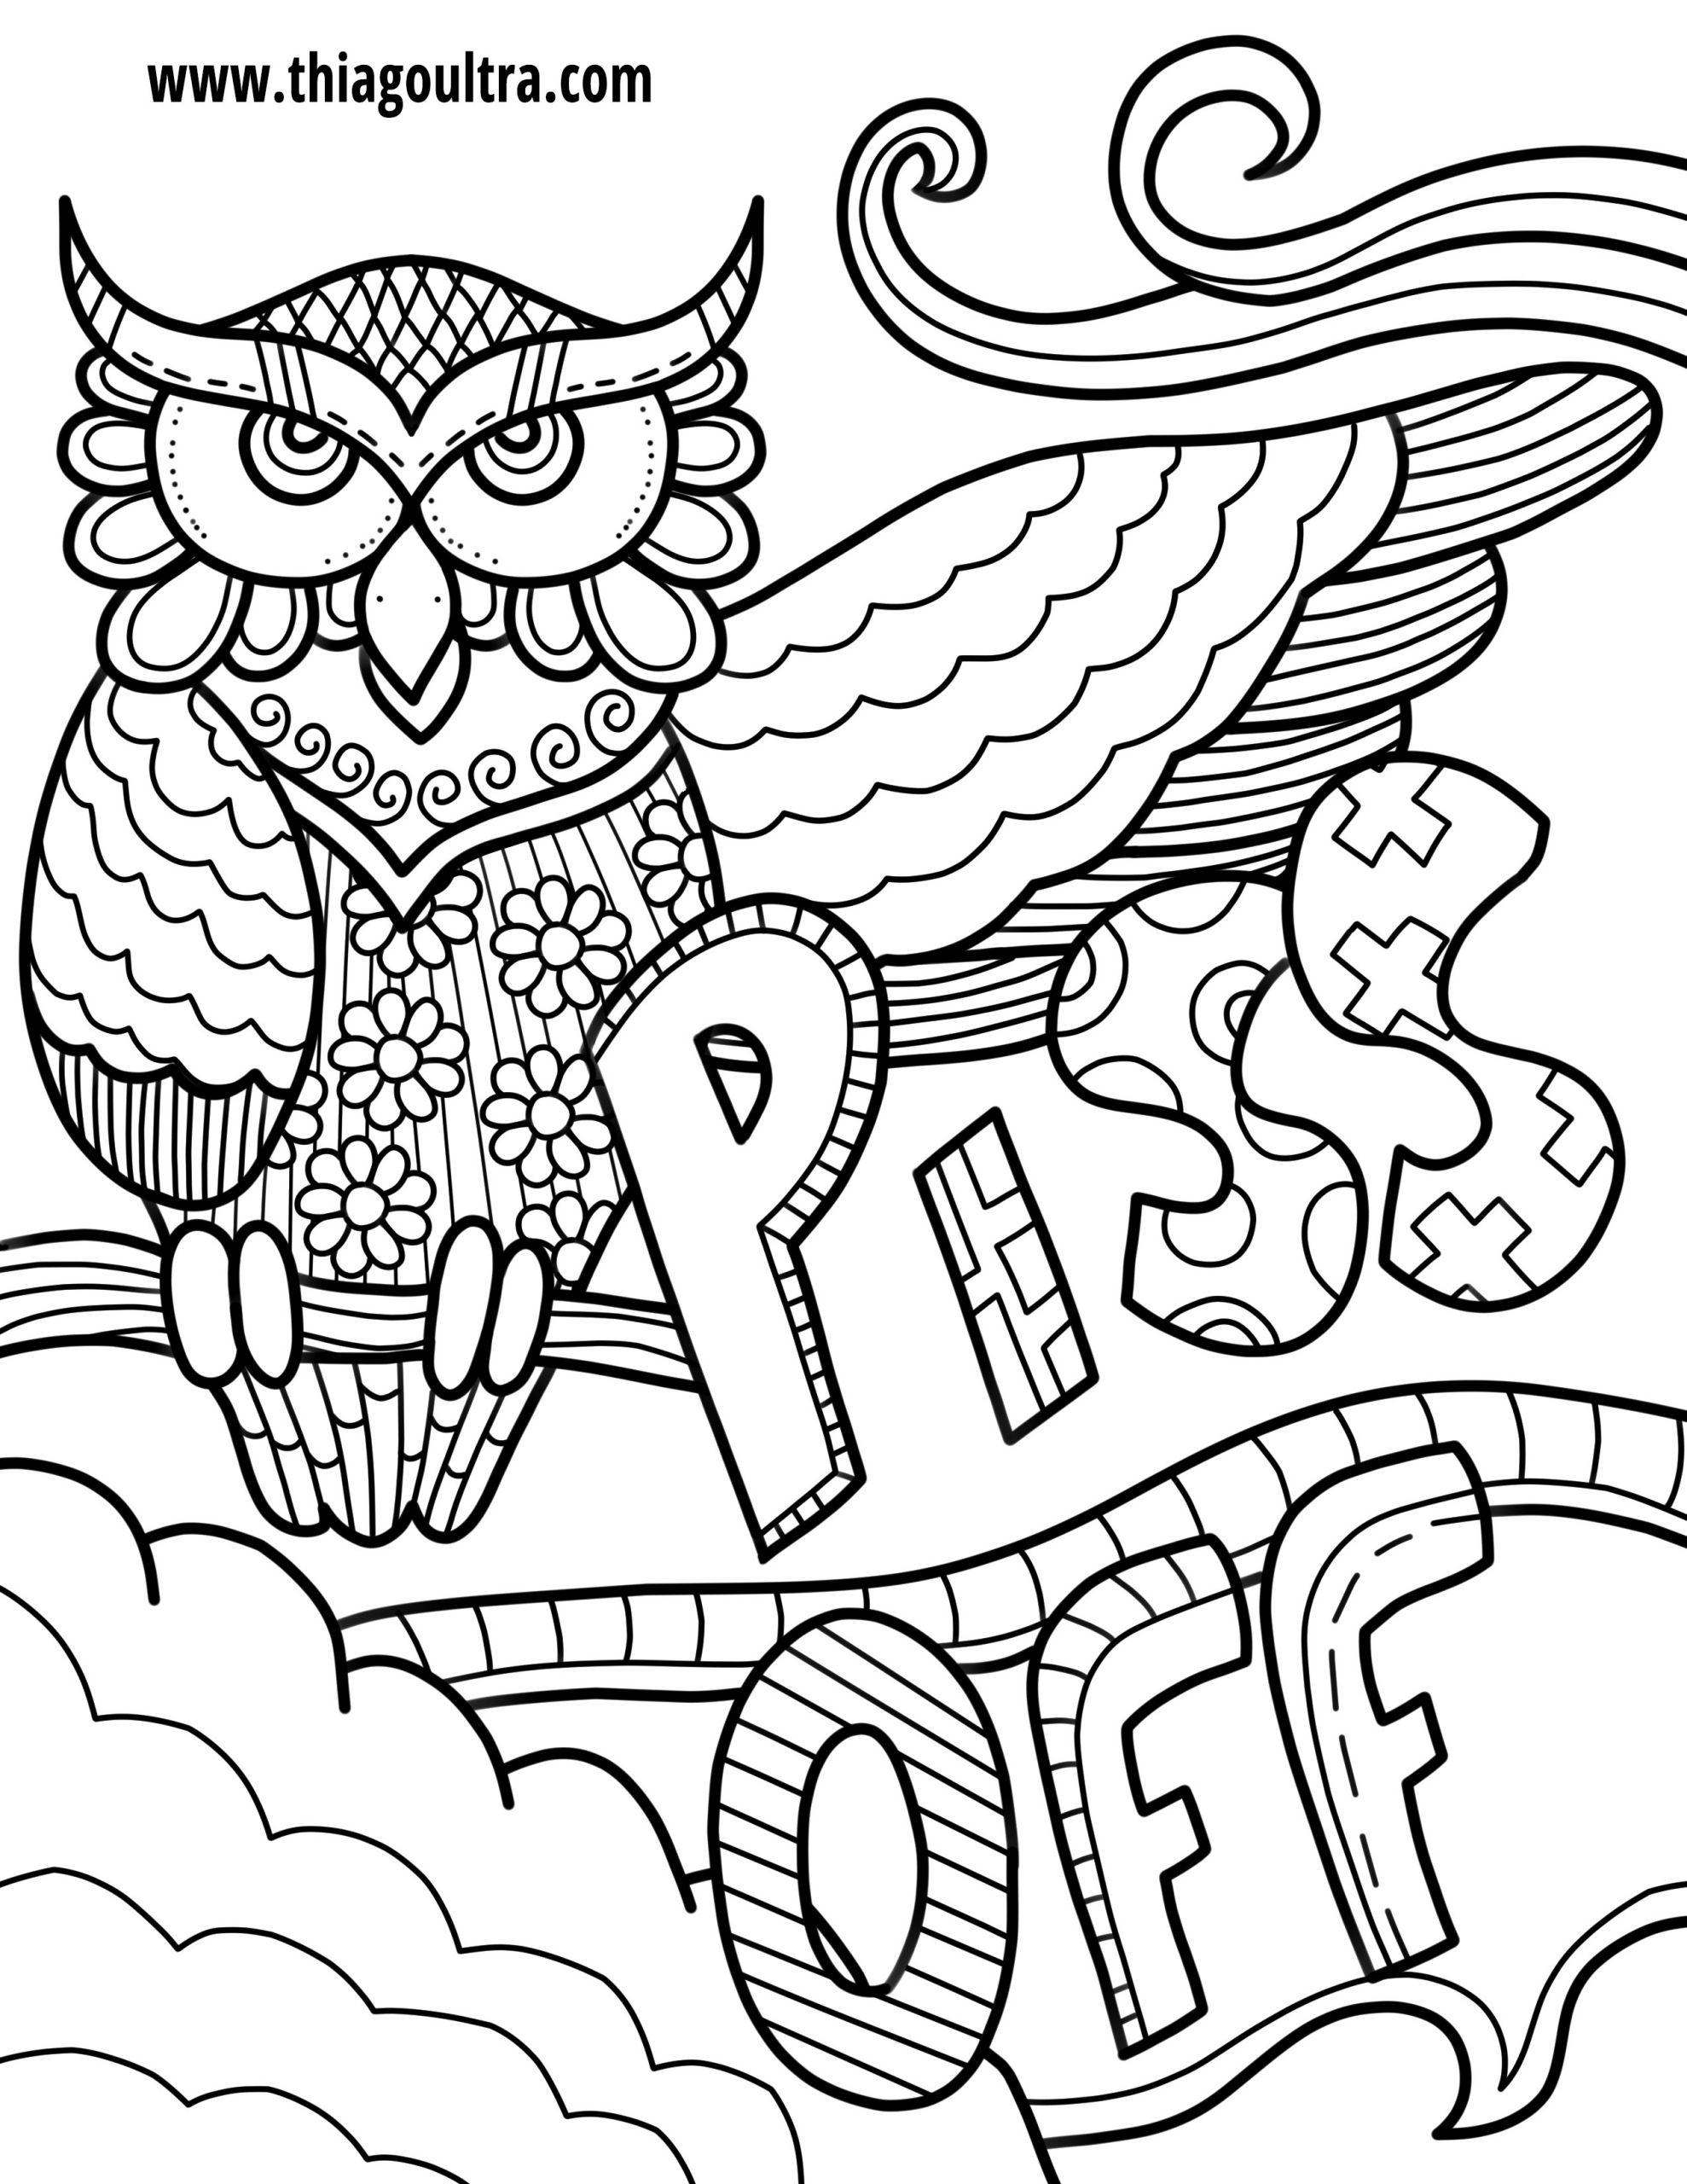 Adult Coloring Pages Swear Words  Adult Swear Coloring Pages at GetDrawings